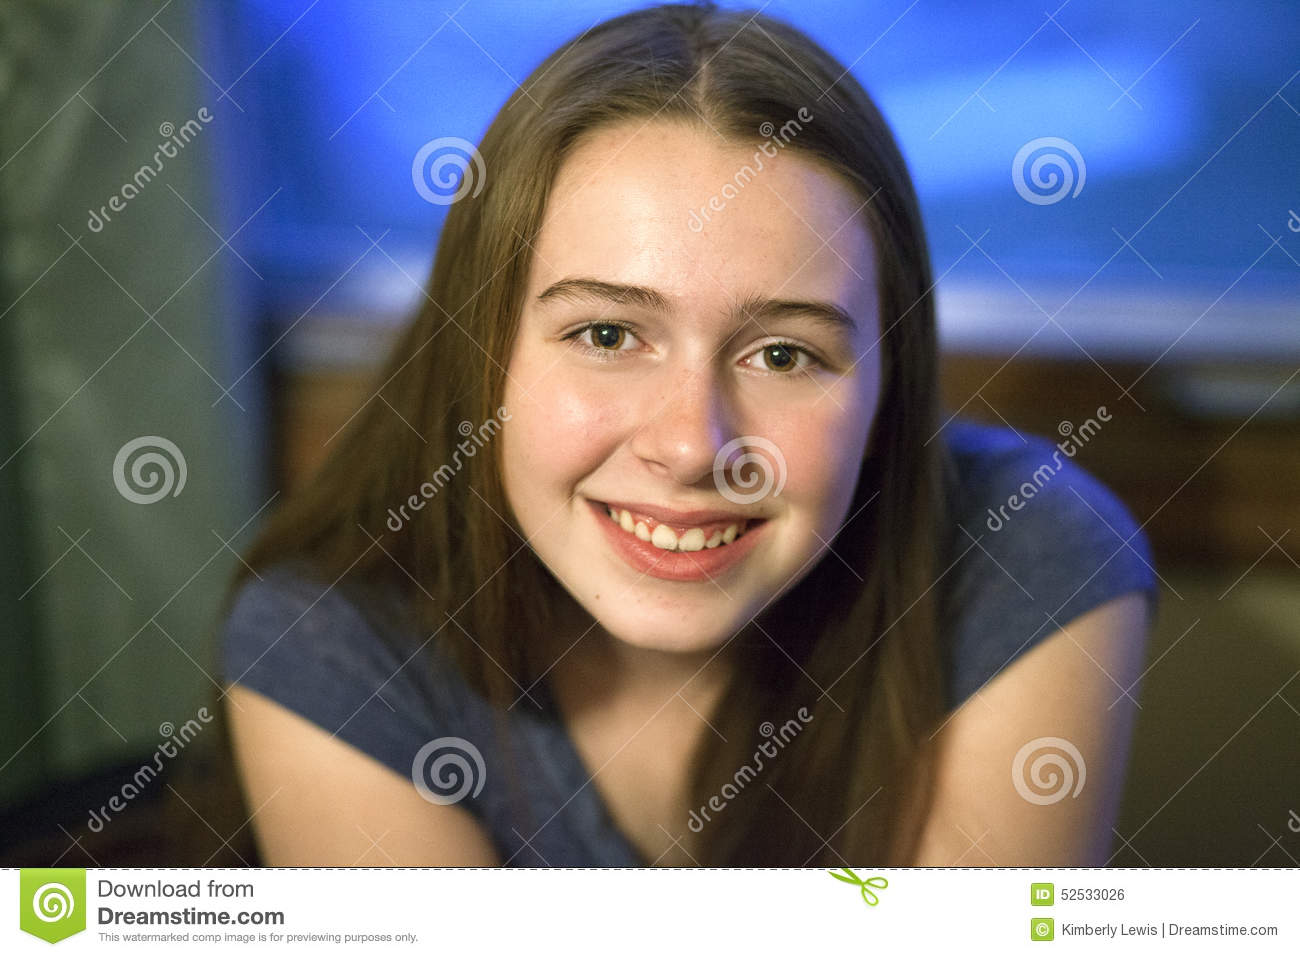 Braces, Submission and Facebook on Pinterest